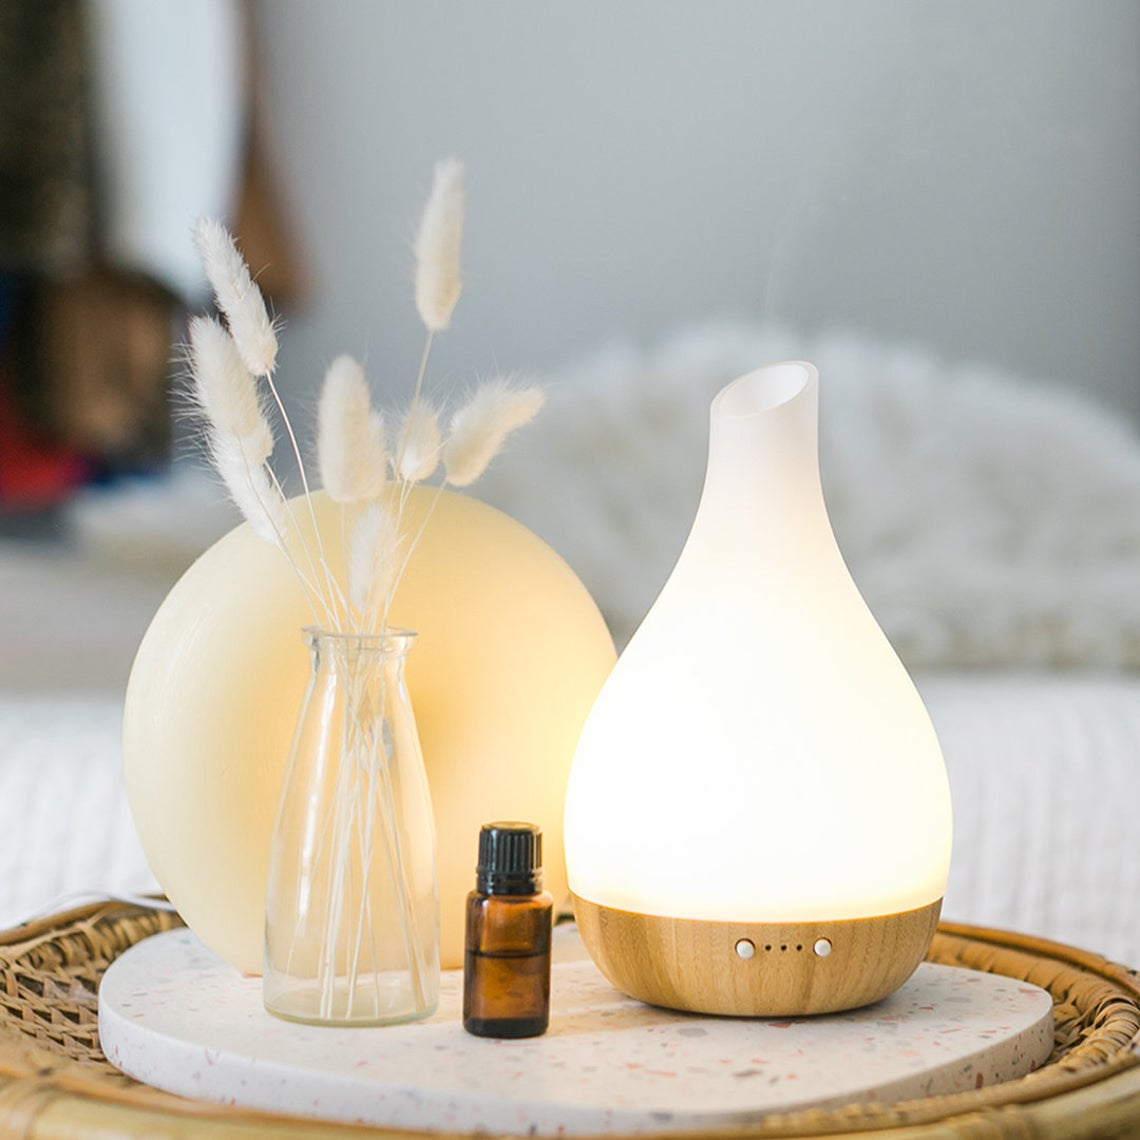 Sleep blends for diffusers and essential oils for insomnia